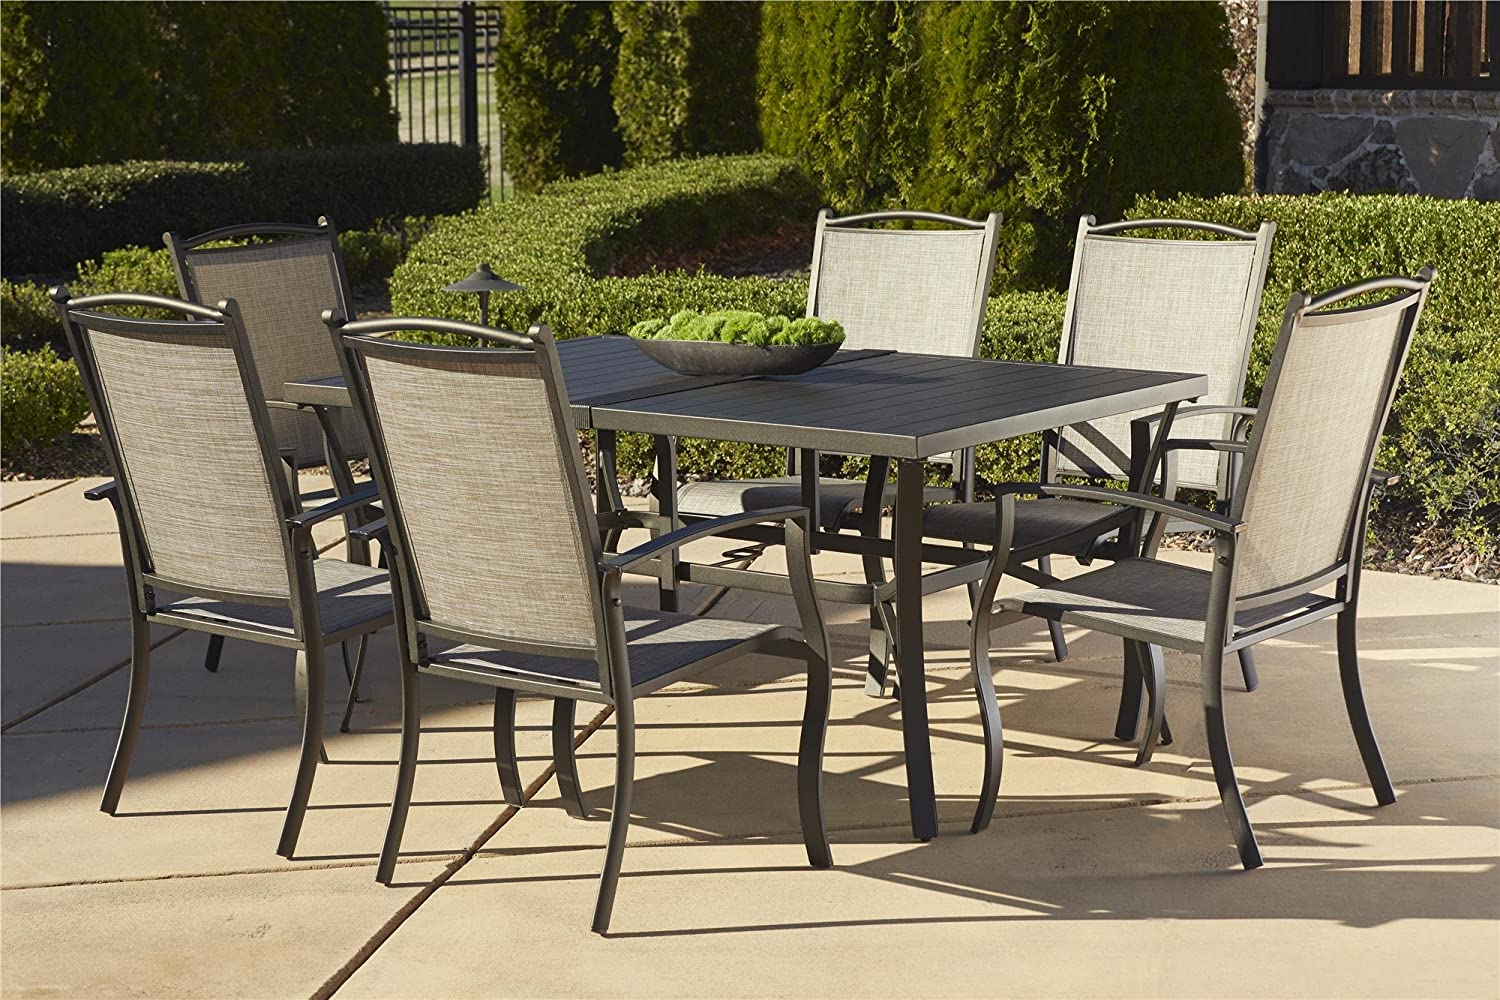 dining pd frame shop patio piece hallandale best selling black set decor home metal